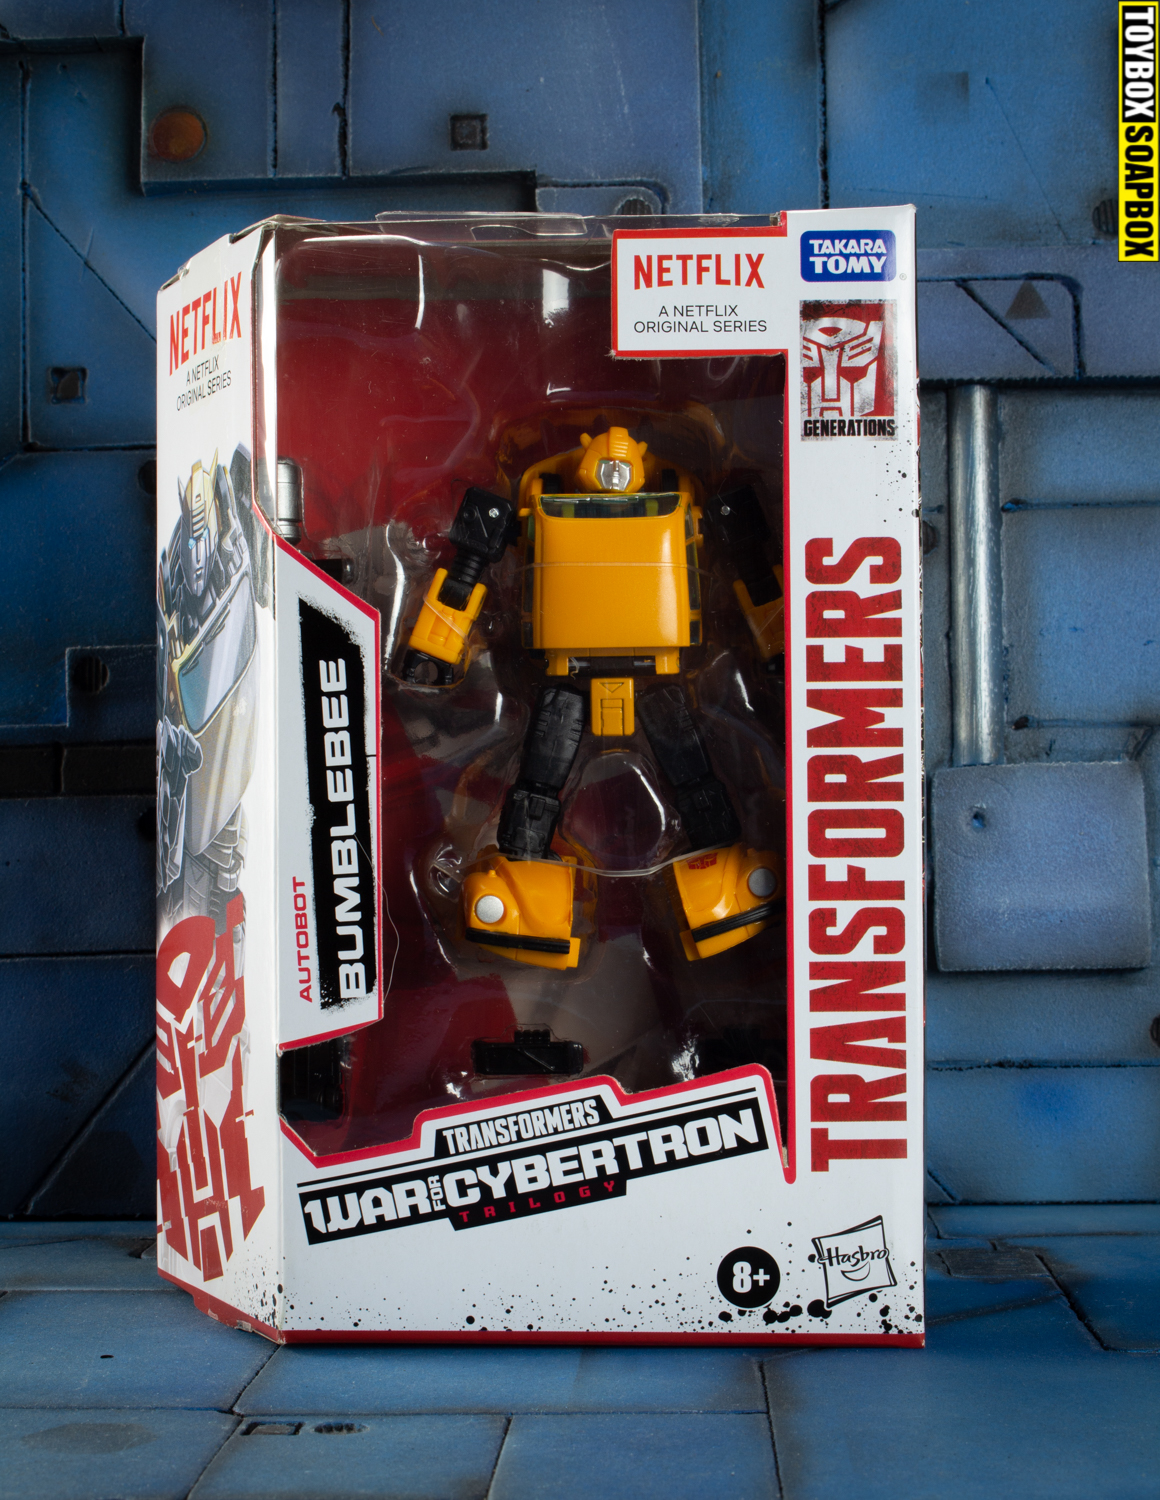 Netflix bumblebee in box review